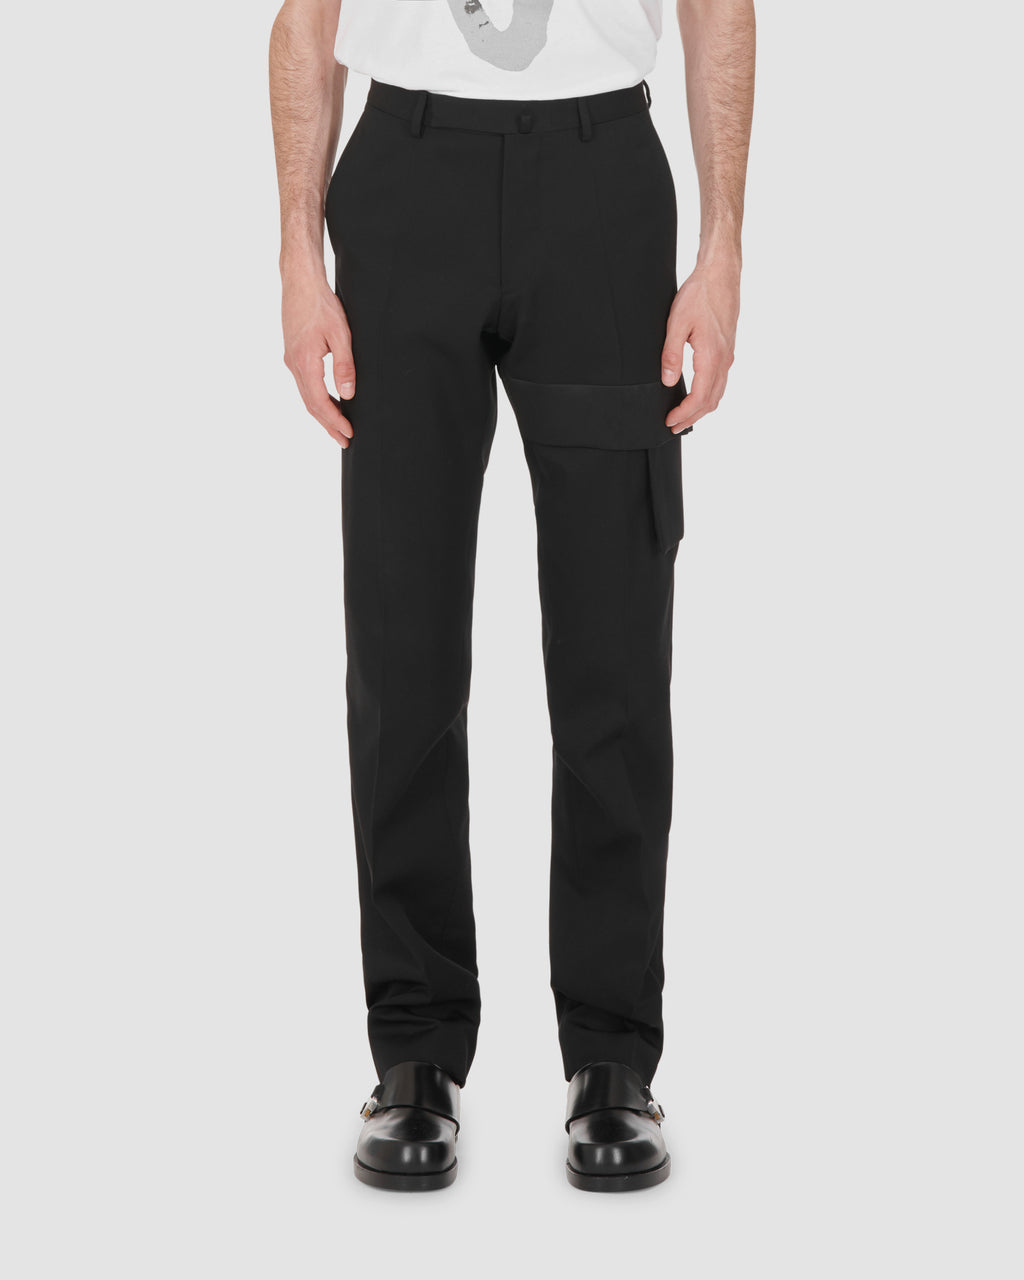 APEX SUIT PANT W POCKET